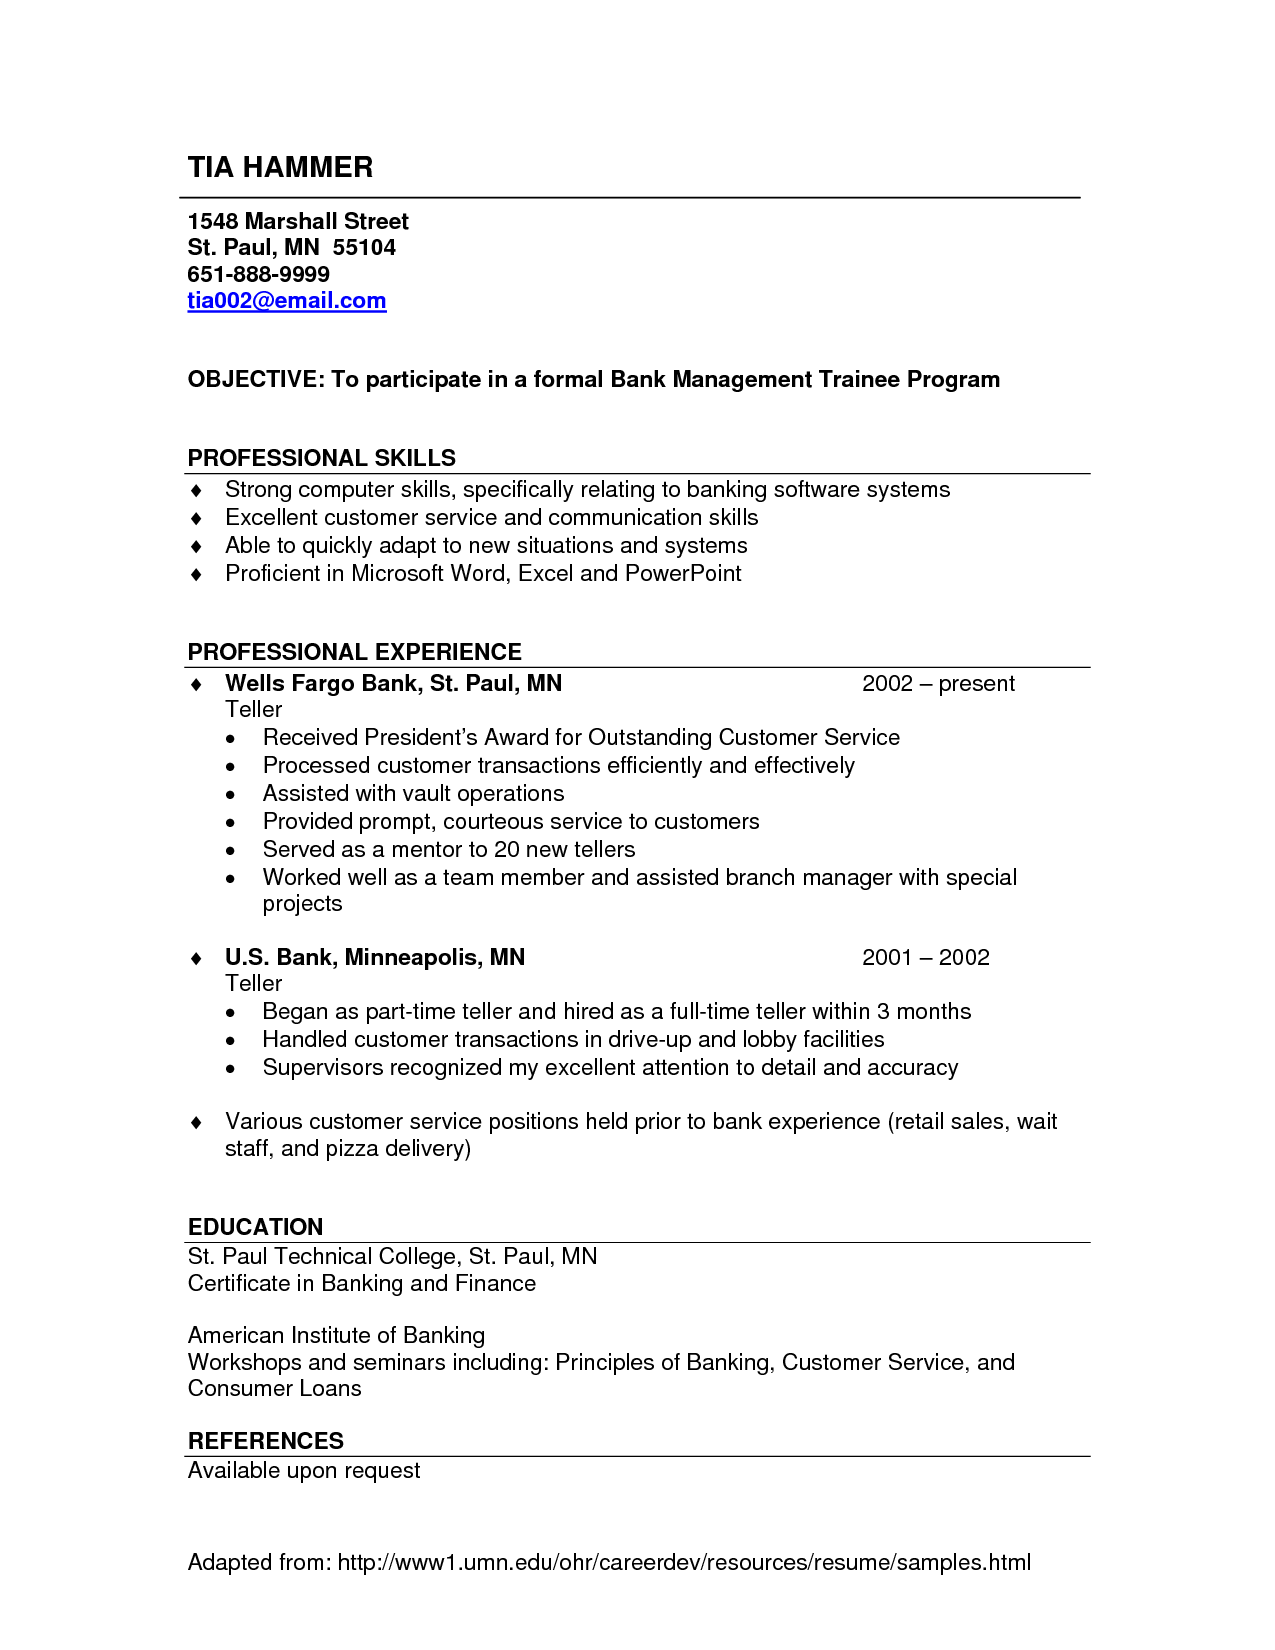 resume sles for banking - 100 images - resume template banking 100 ...